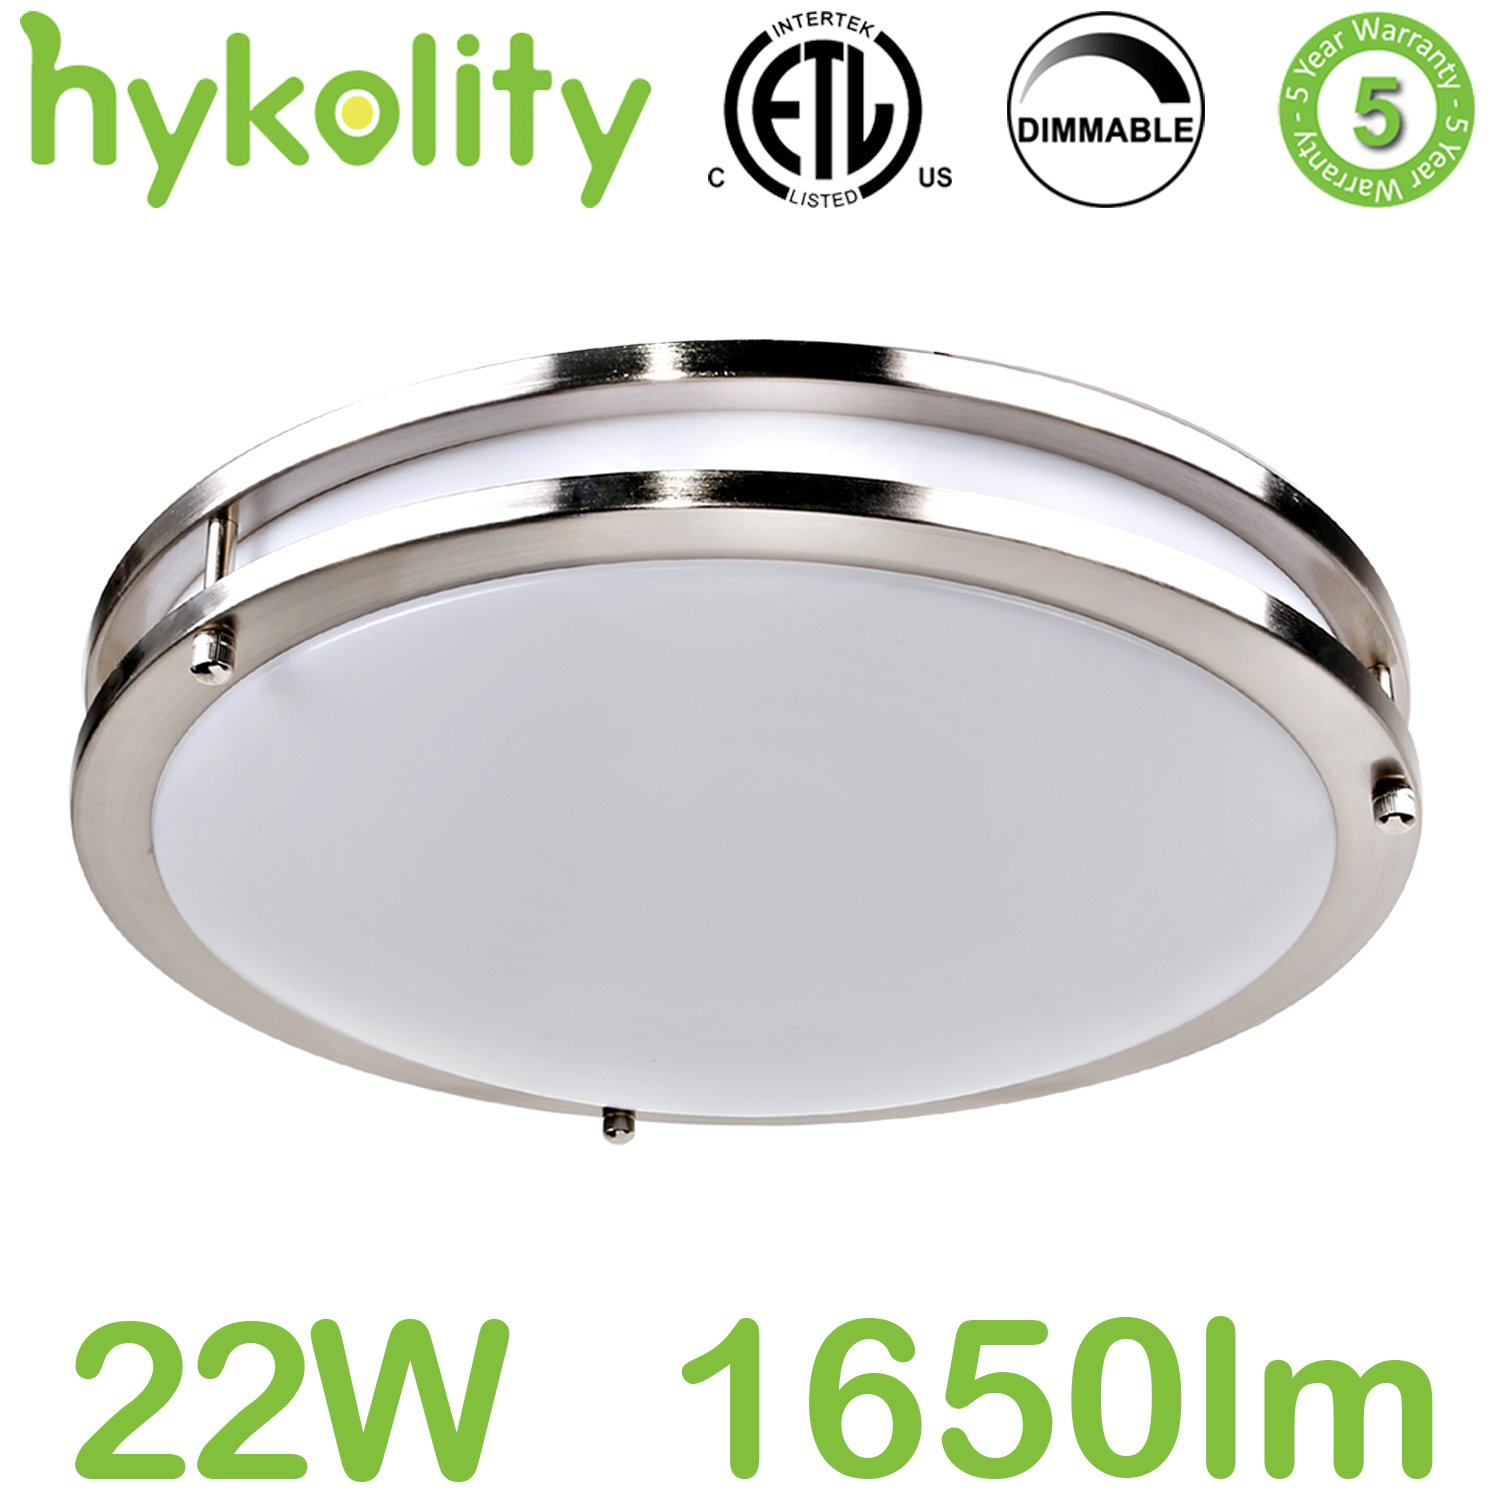 Hykolity 14 inch LED Ceiling Light, 22W [160W Equivalent] 1650lm 4000K BN Finish Dimmable Saturn Flushmount Ceiling Light for Bedroom, Restroom, Walk in Closet, Washroom, Living Room